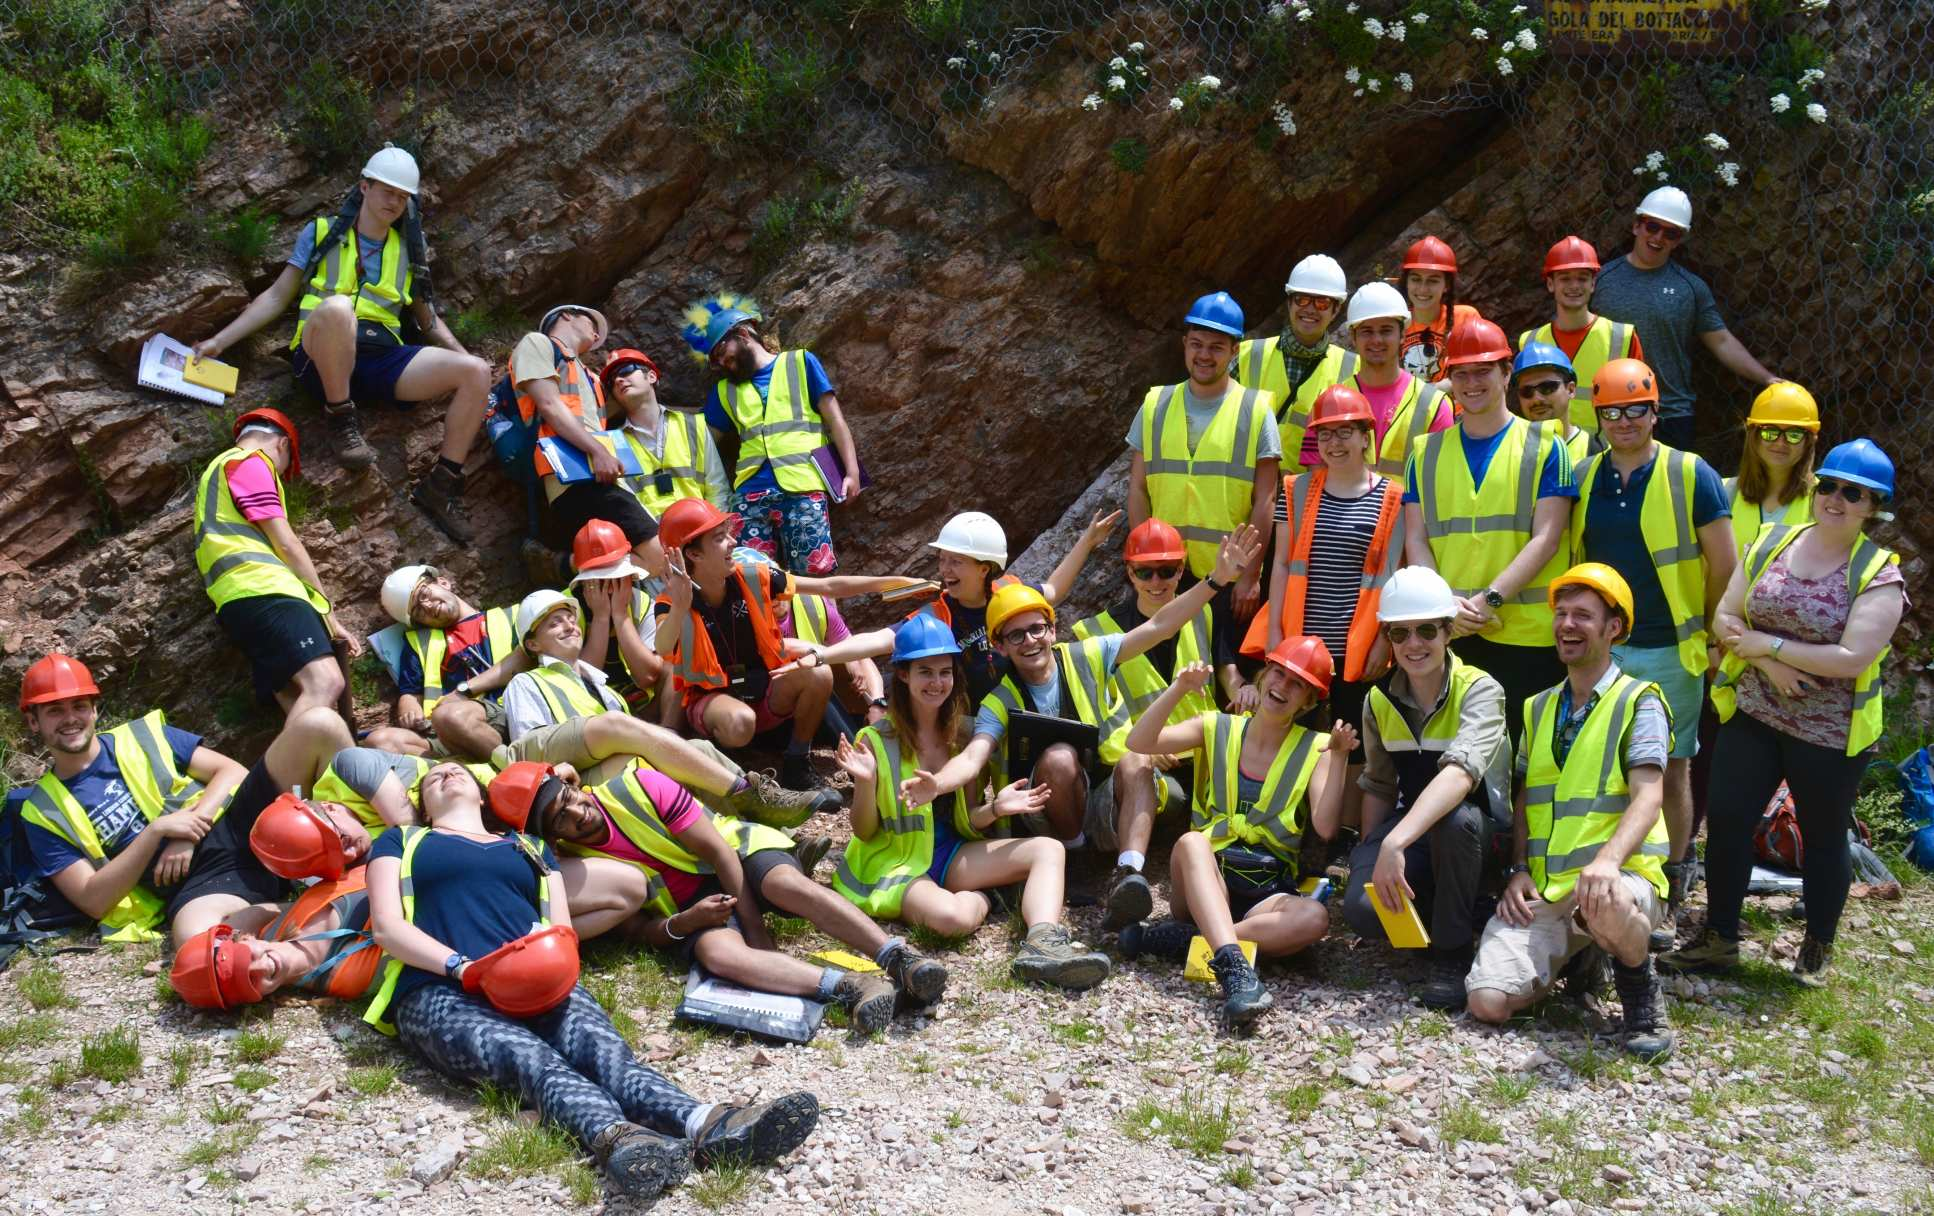 Fourth year students in the Appenines pose for a group photo in their fluorescent vests and hard hats.